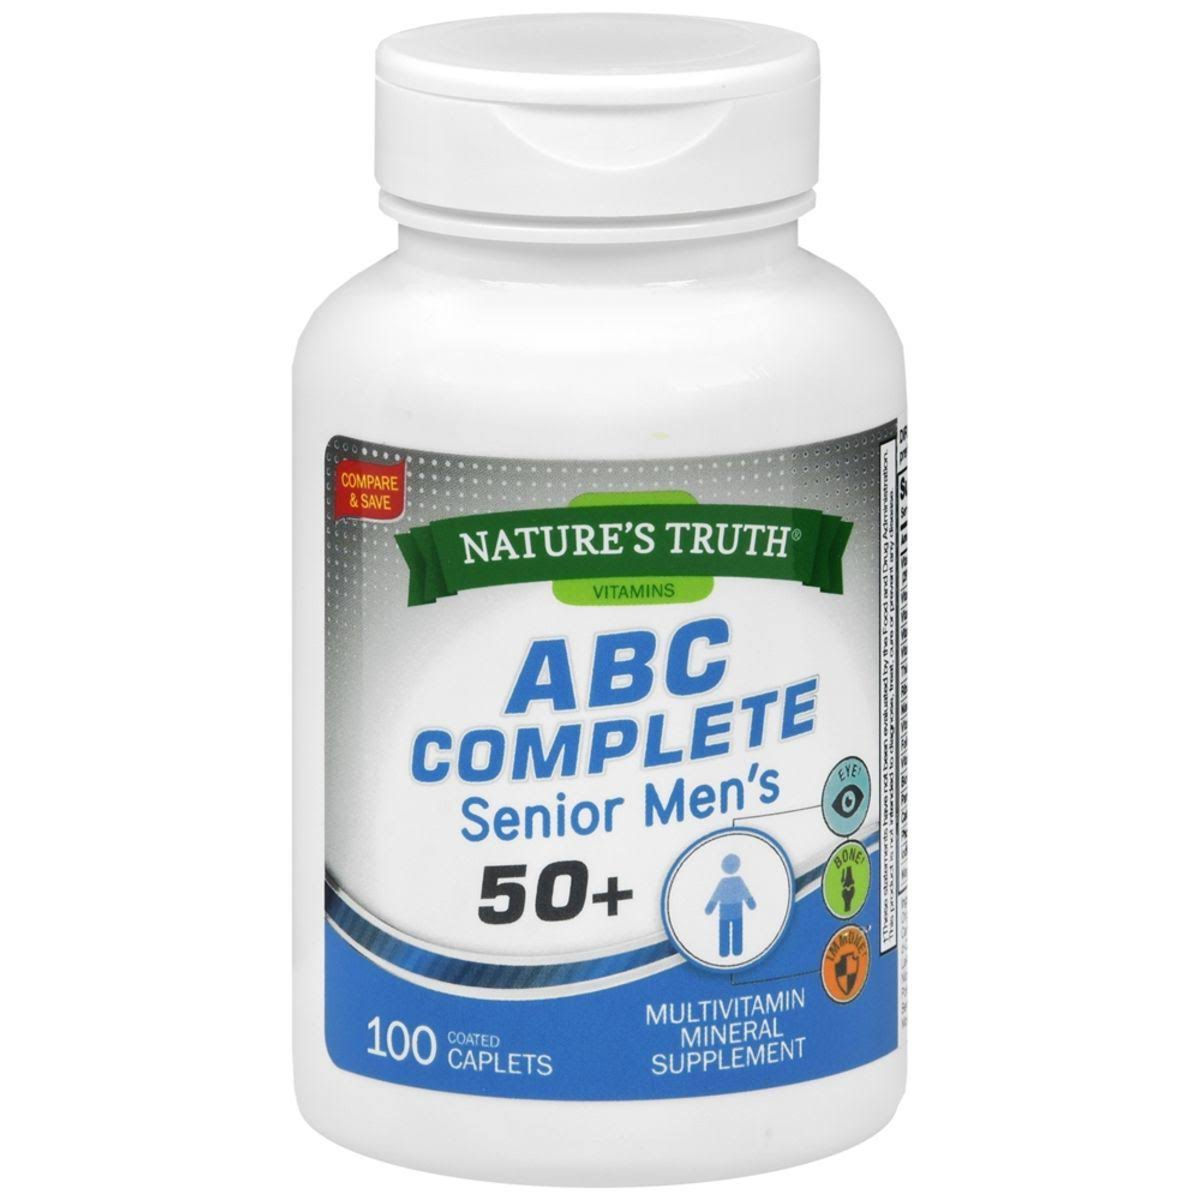 Nature's Truth ABC Complete Men's 50+ Multivitamin Caplets, 100 Count